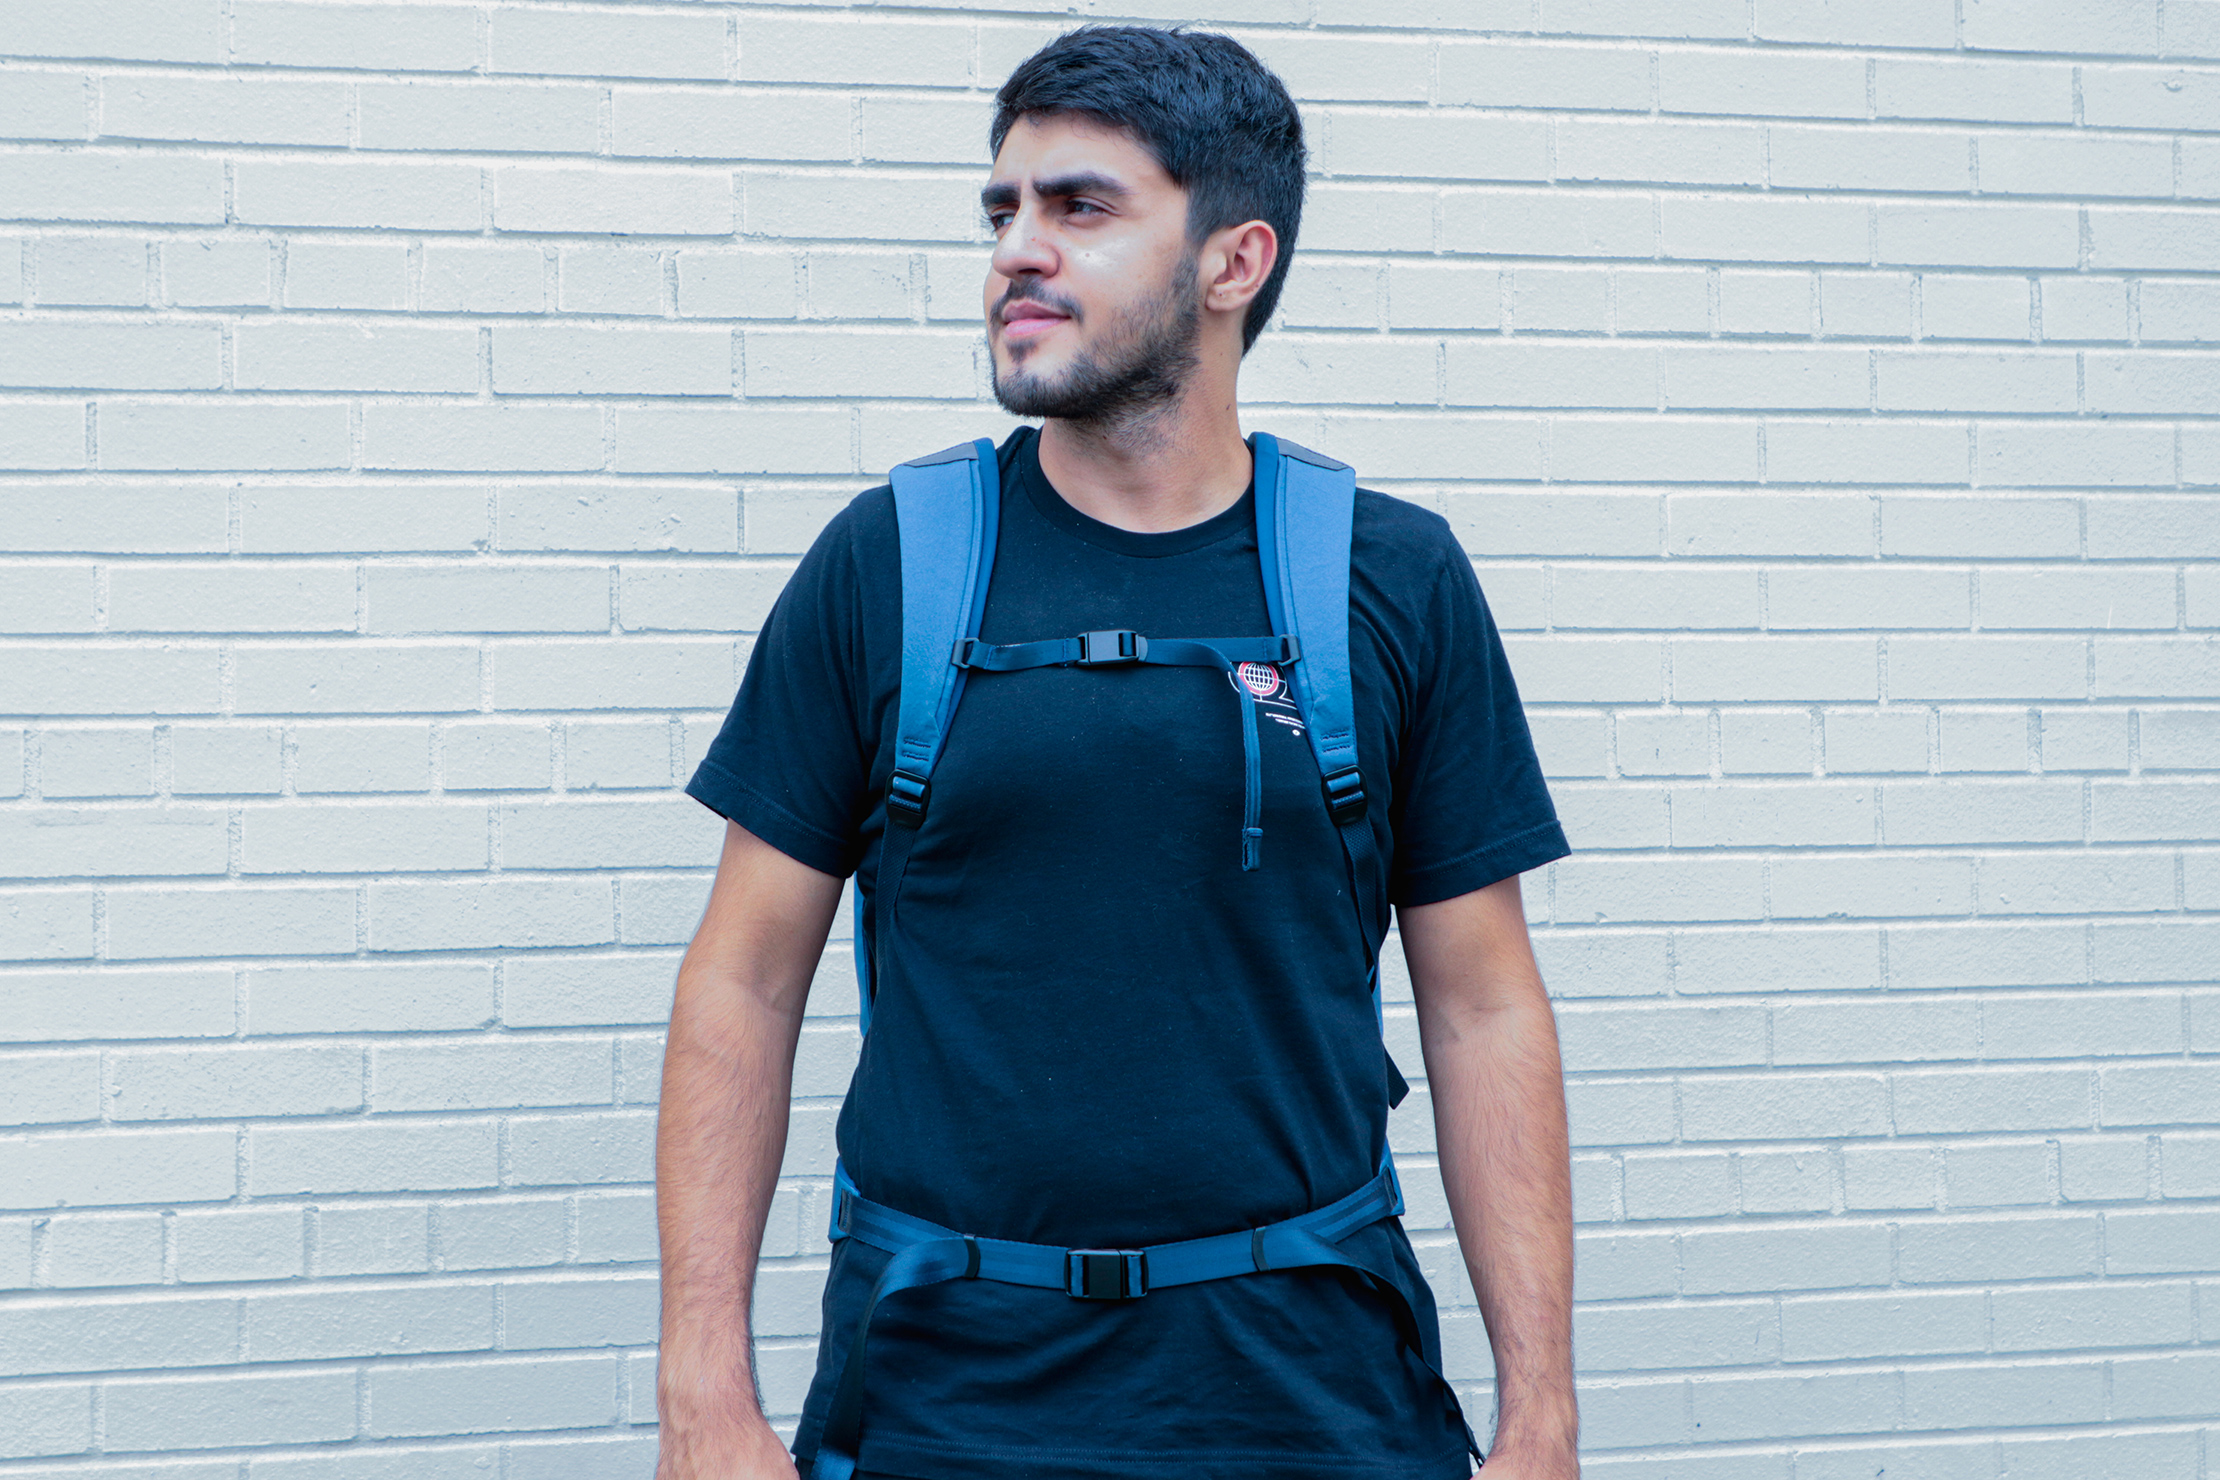 Bellroy Transit Backpack Plus Harness System